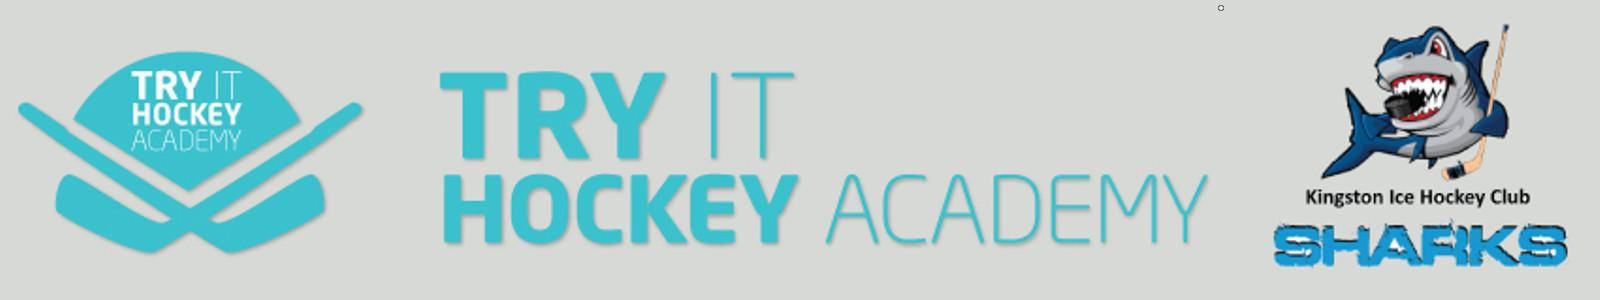 Try It Ice Hockey Academy Banner